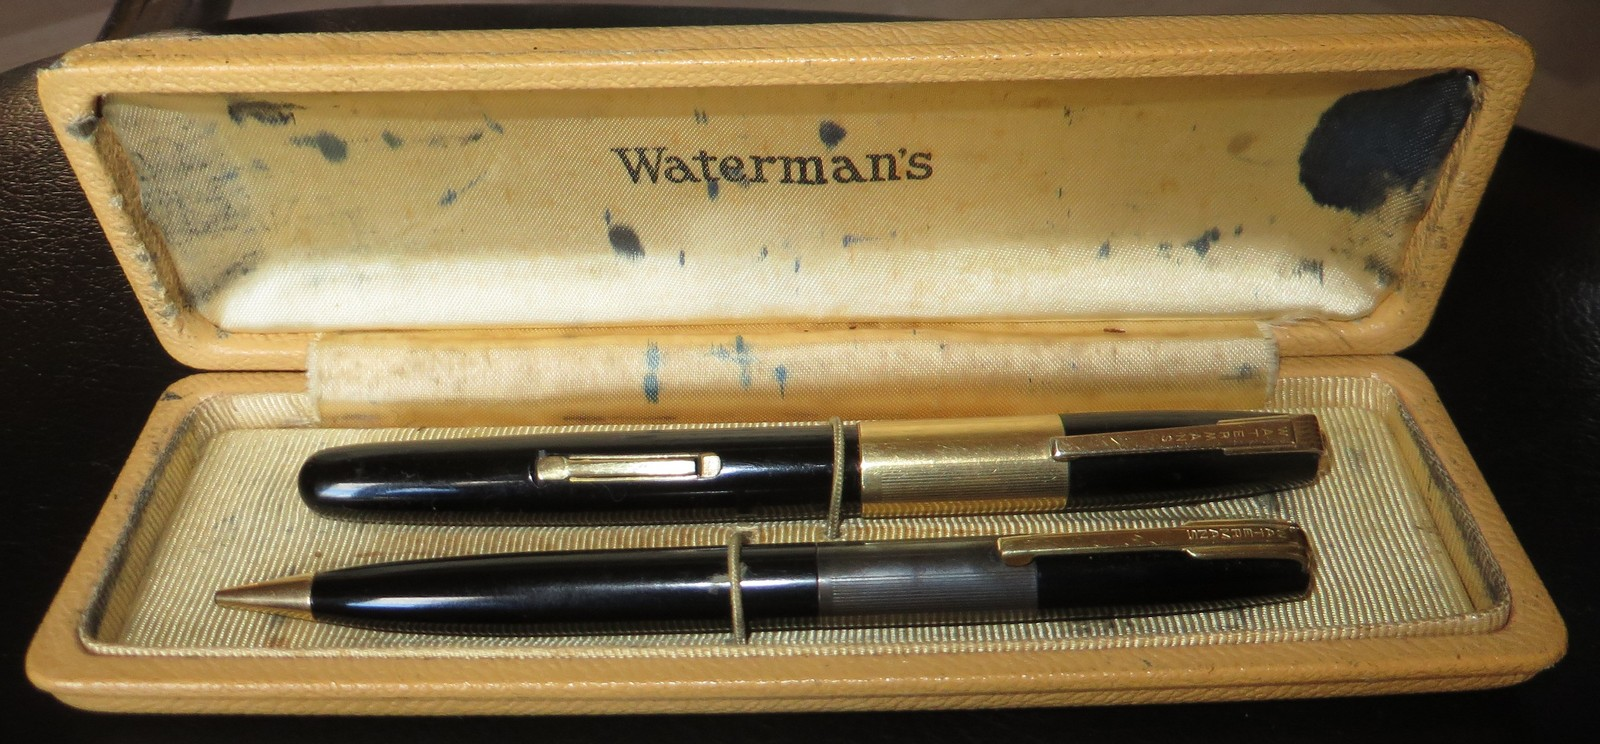 watermans-setfountainandpencil.jpg